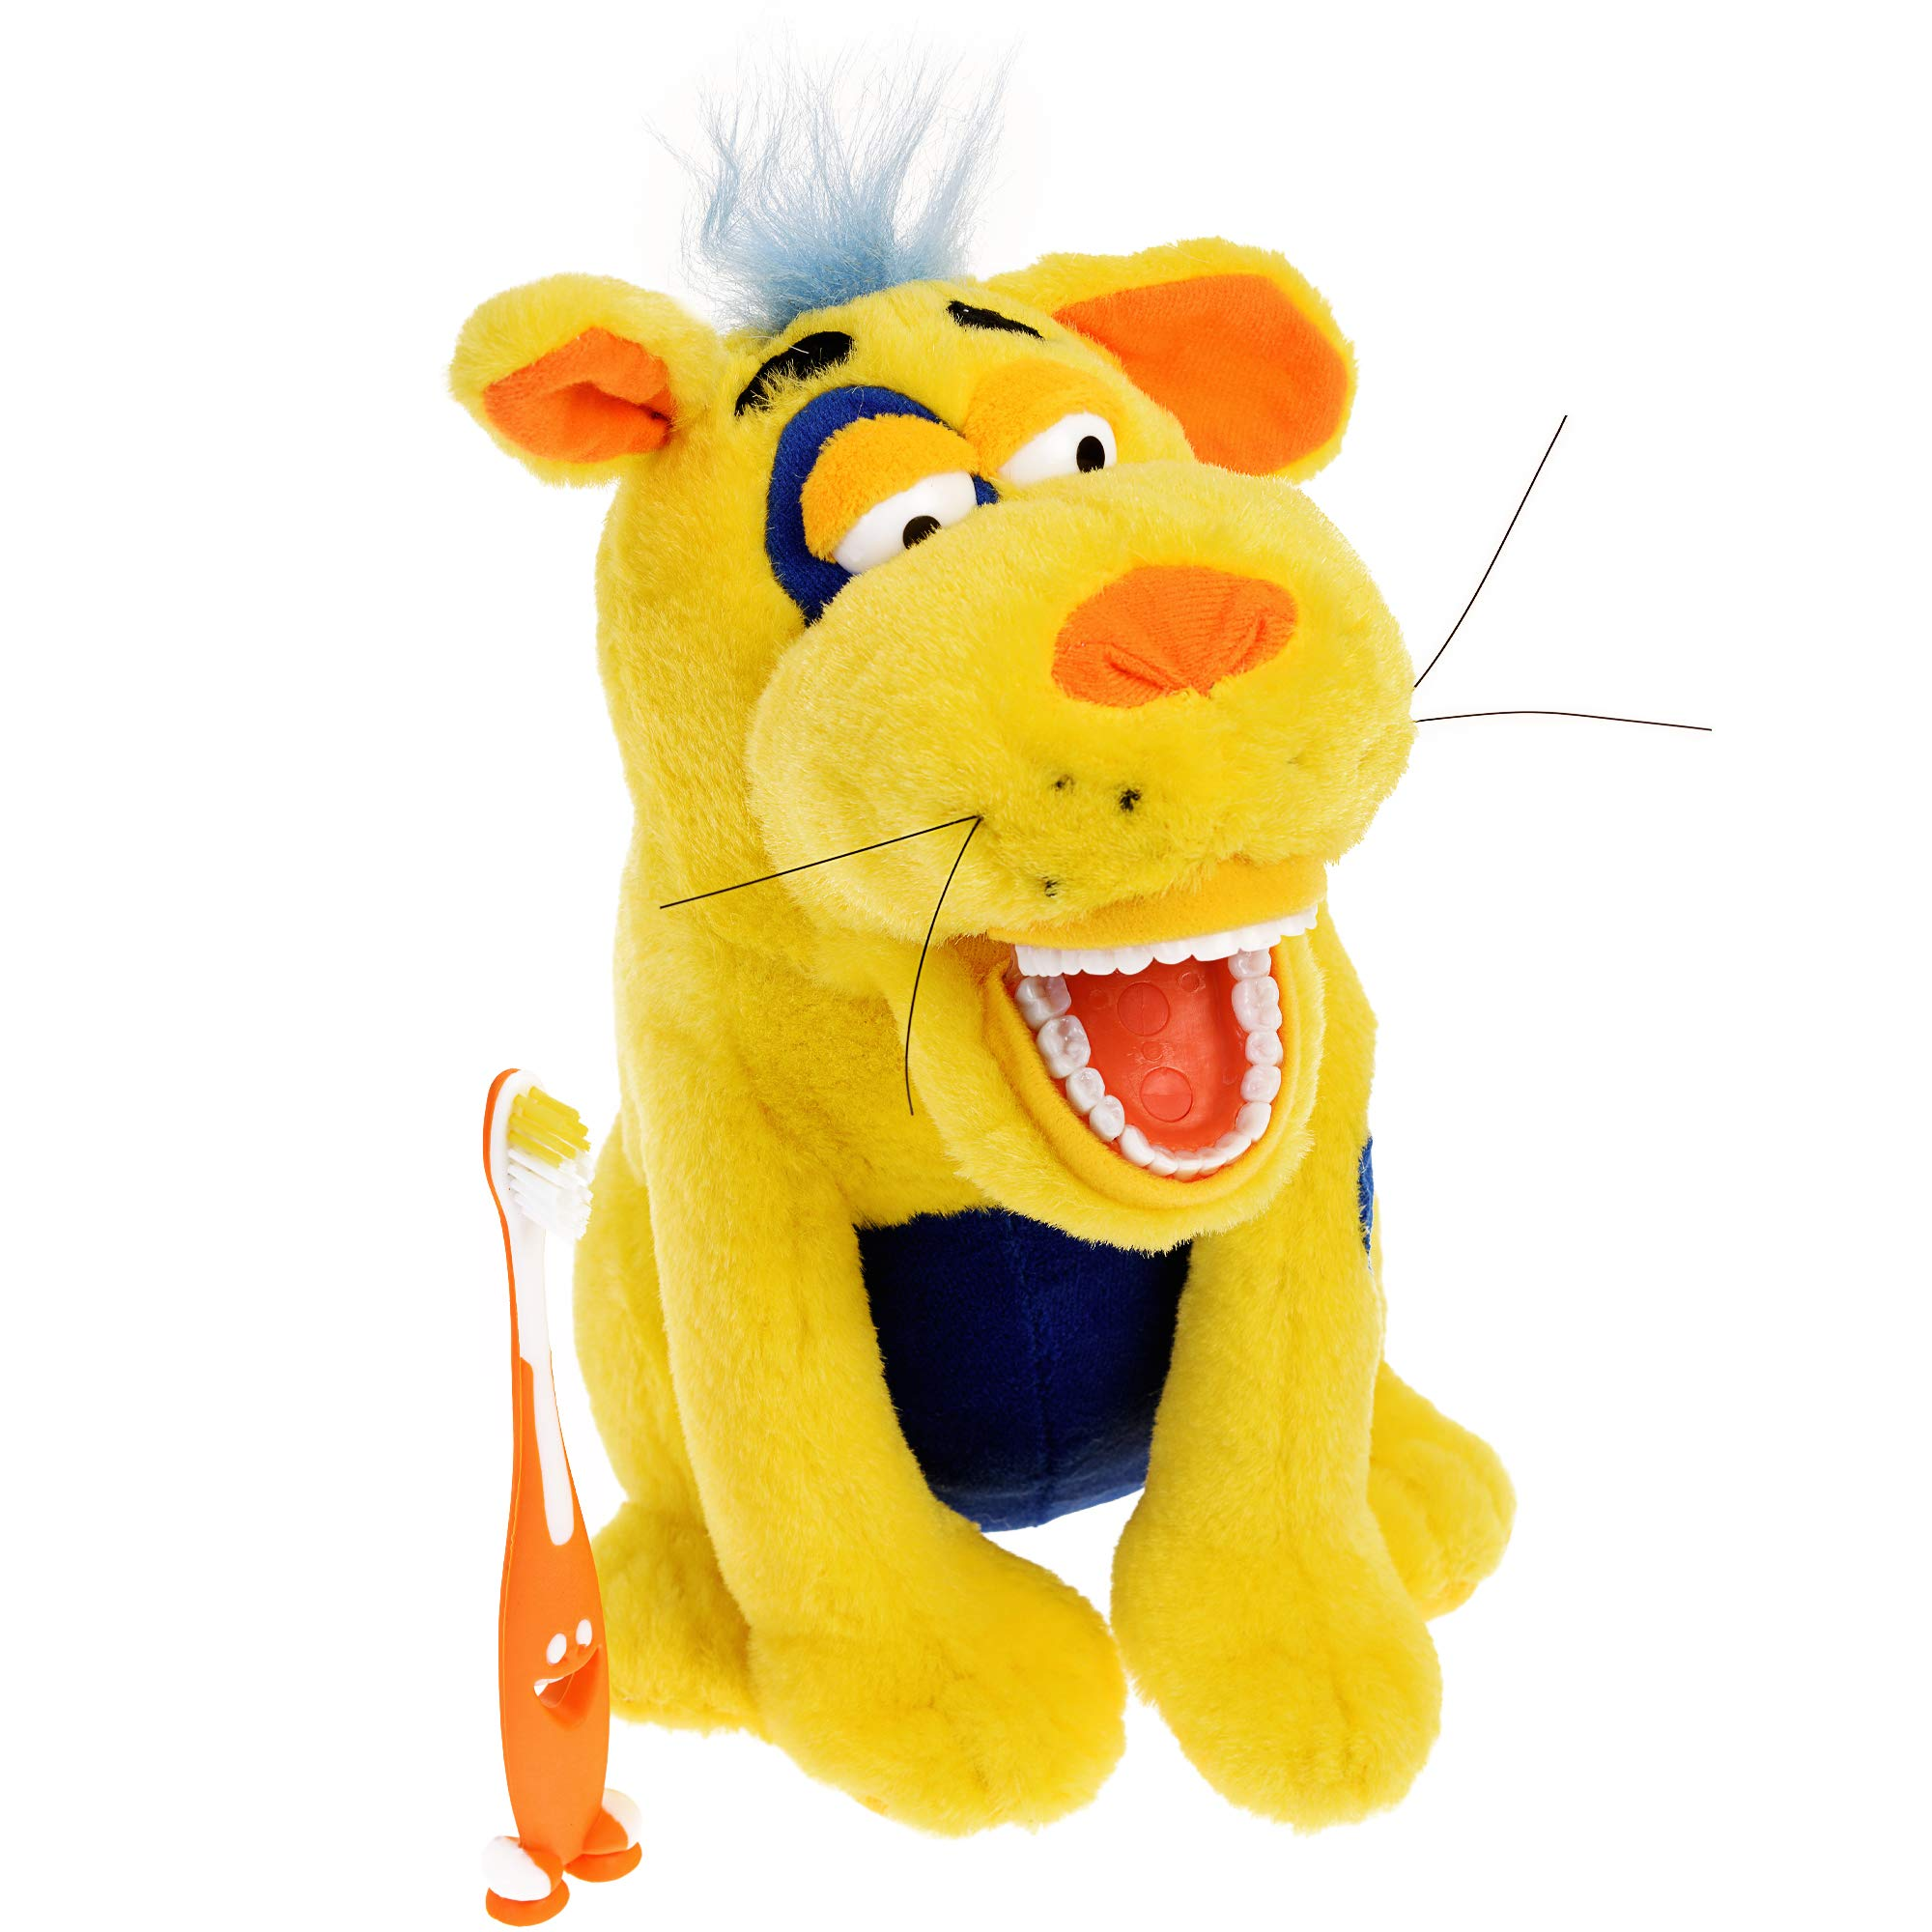 StarSmilez Kids Tooth Brushing Buddy Lil Ollie Mutt - Plush Dental Education Helper - Teach Children flossing and Overall Care for Mouth and Teeth